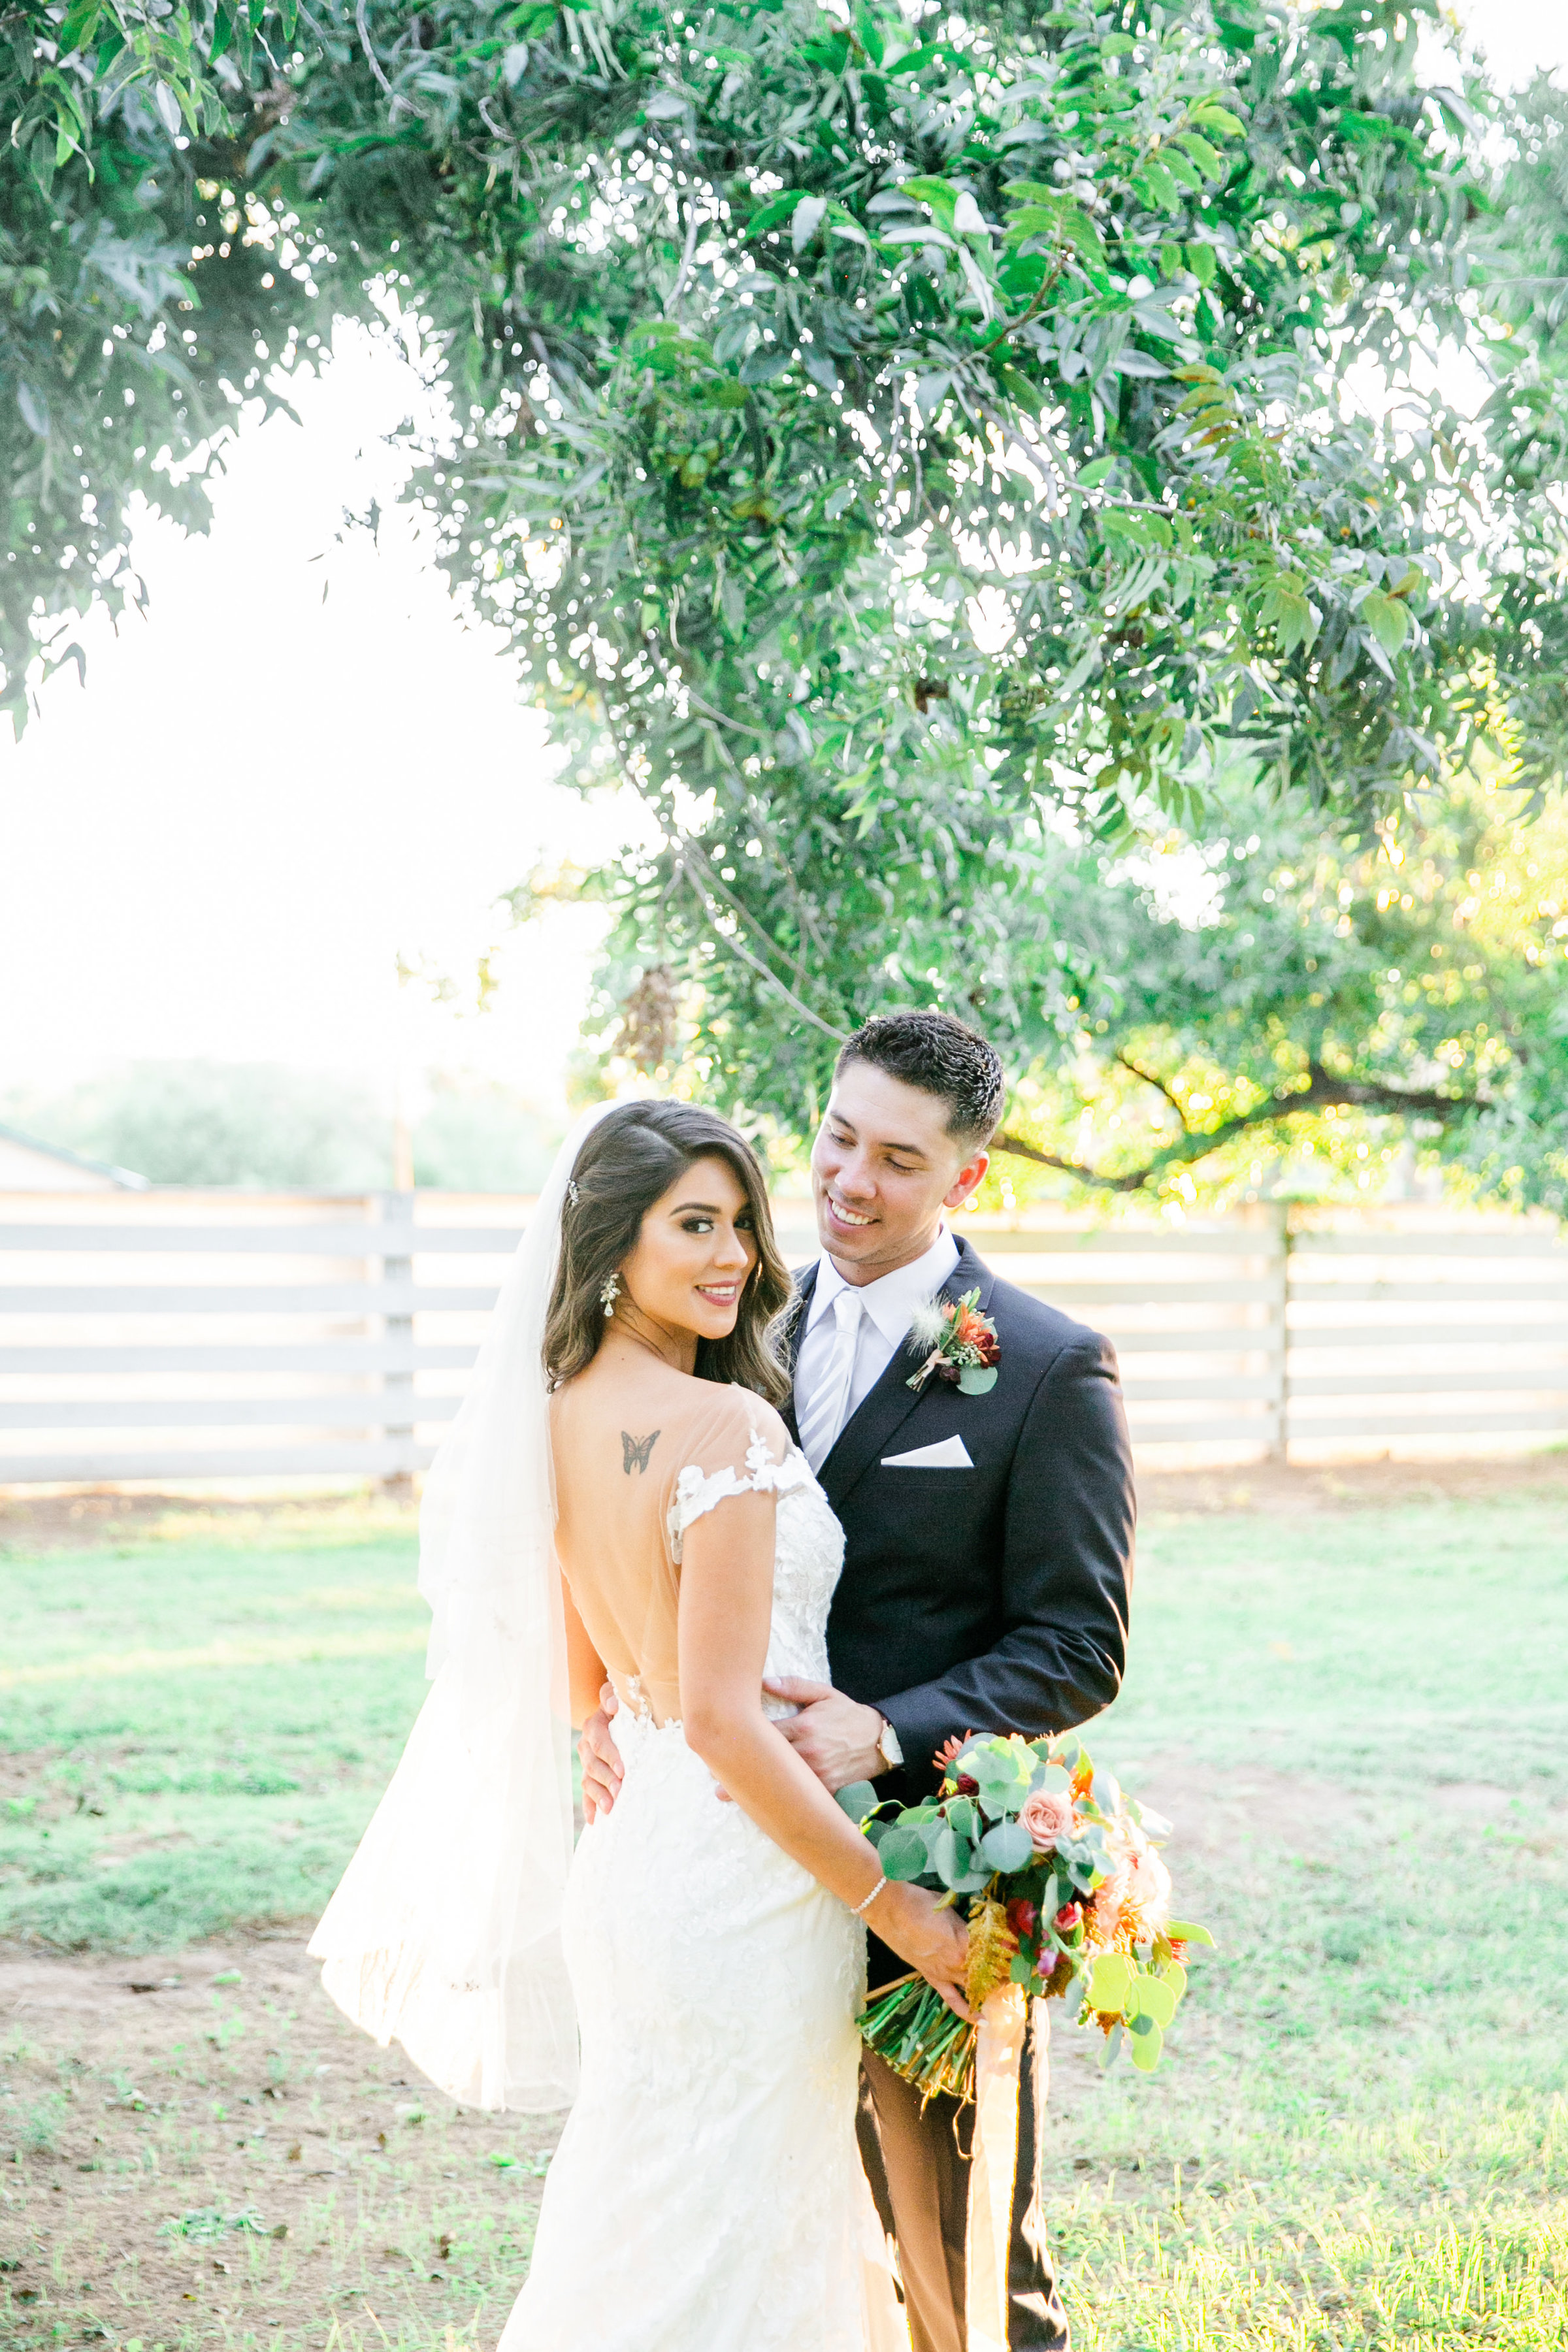 Karlie Colleen Photography - Phoenix Arizona - Farm At South Mountain Venue - Vanessa & Robert-563